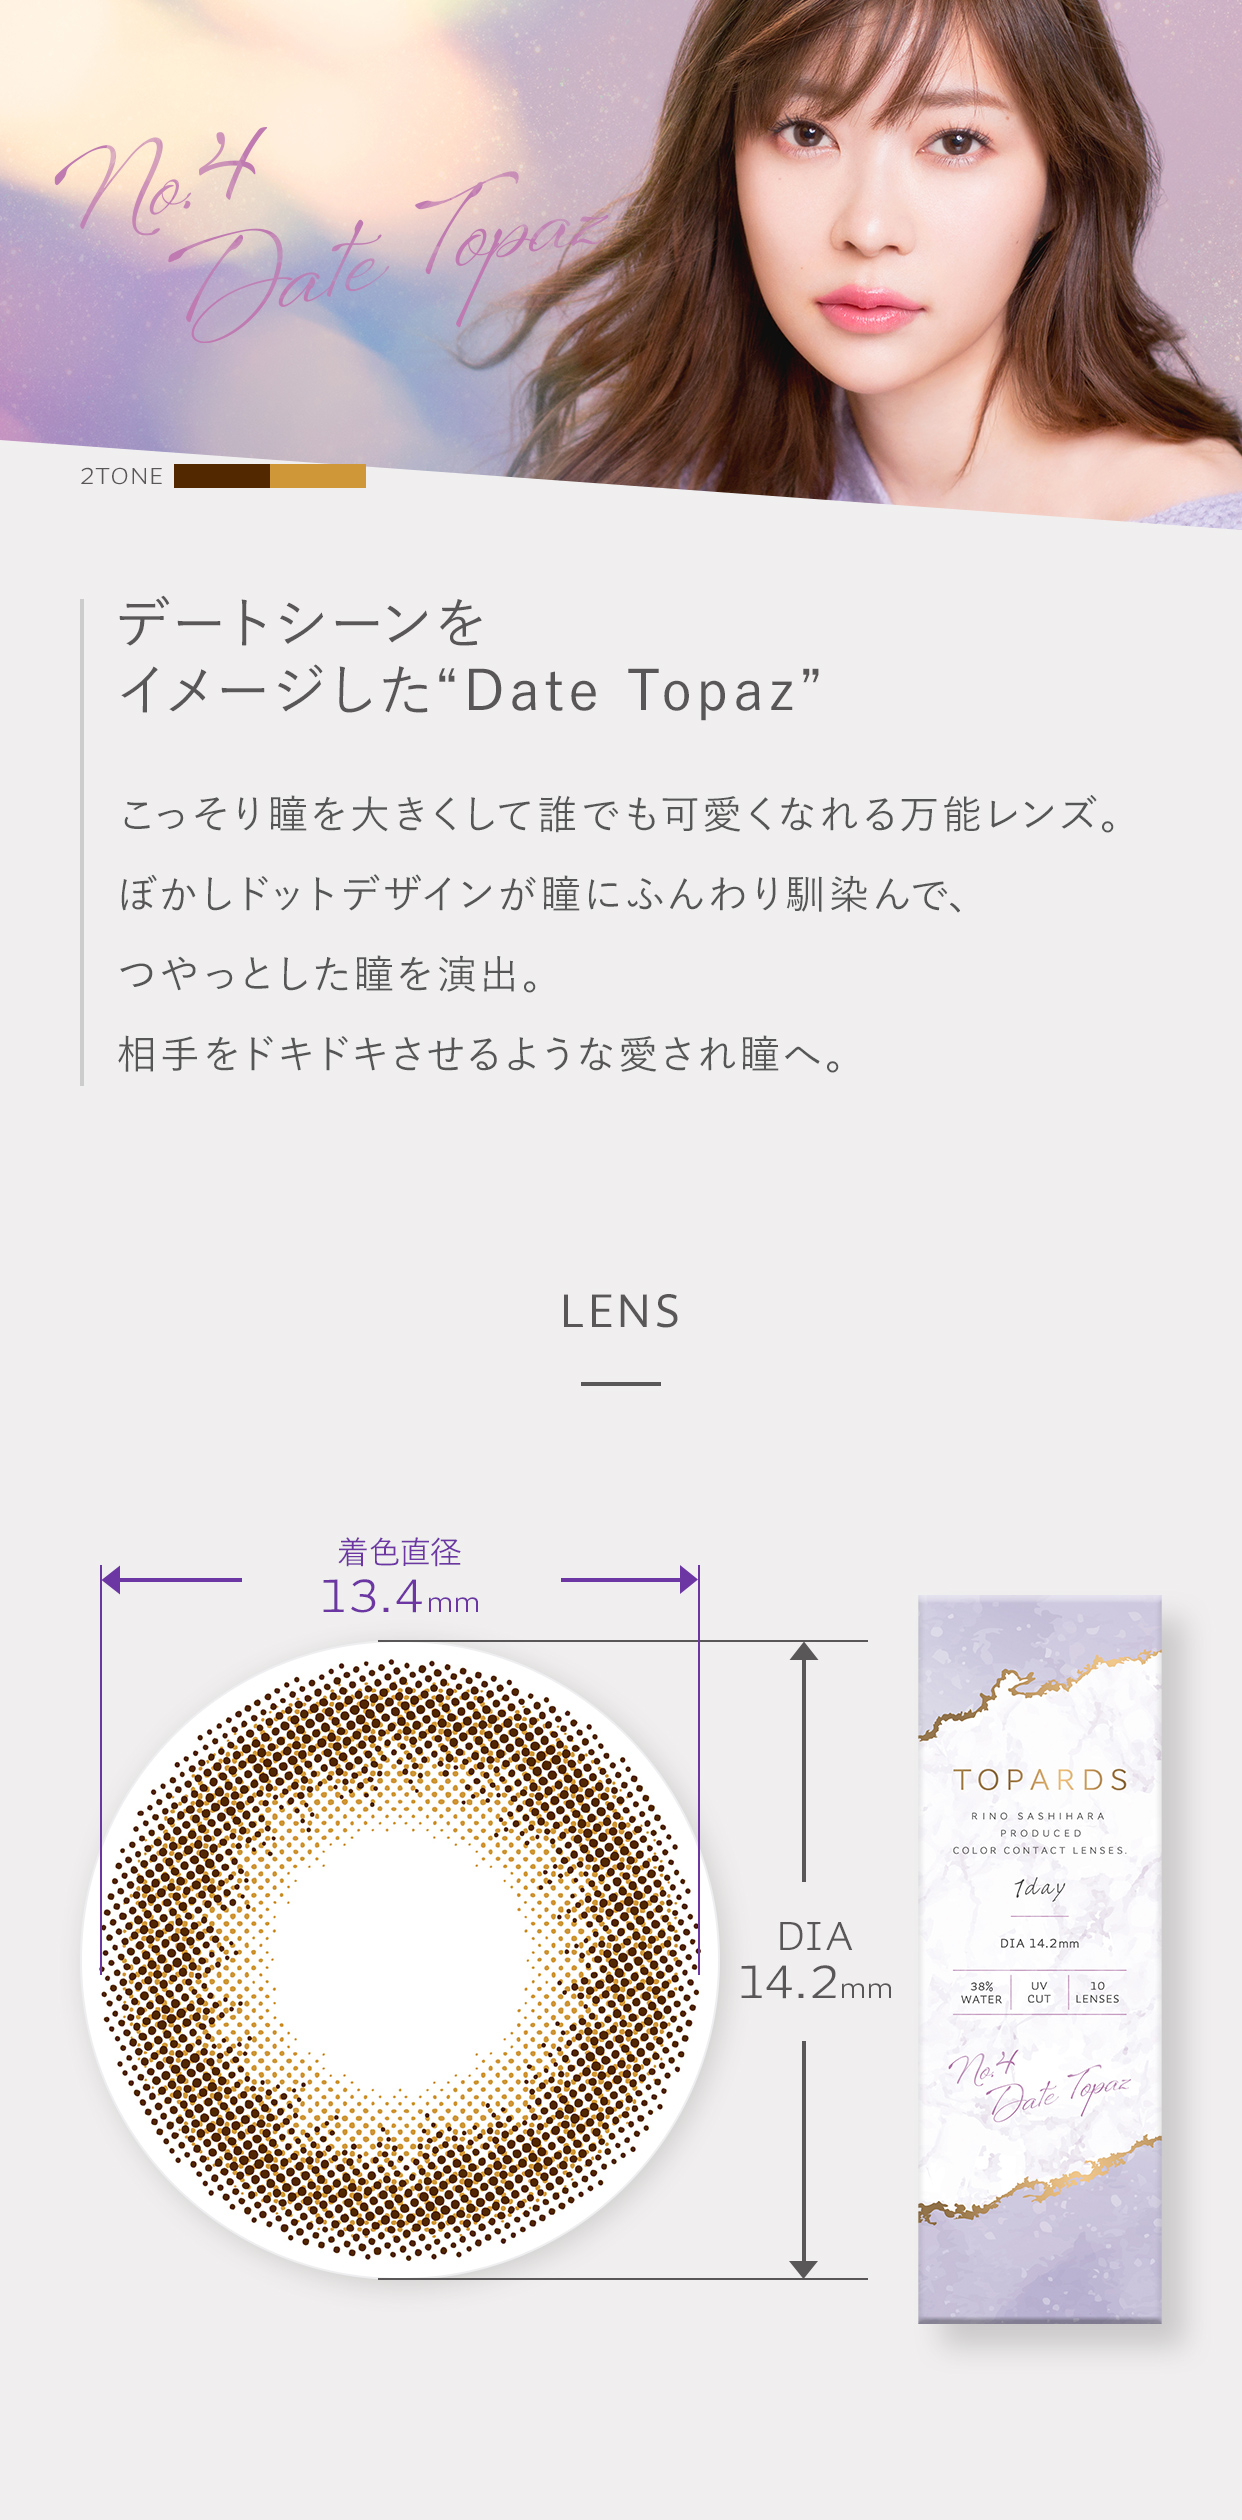 TOPARDS トパーズ 10